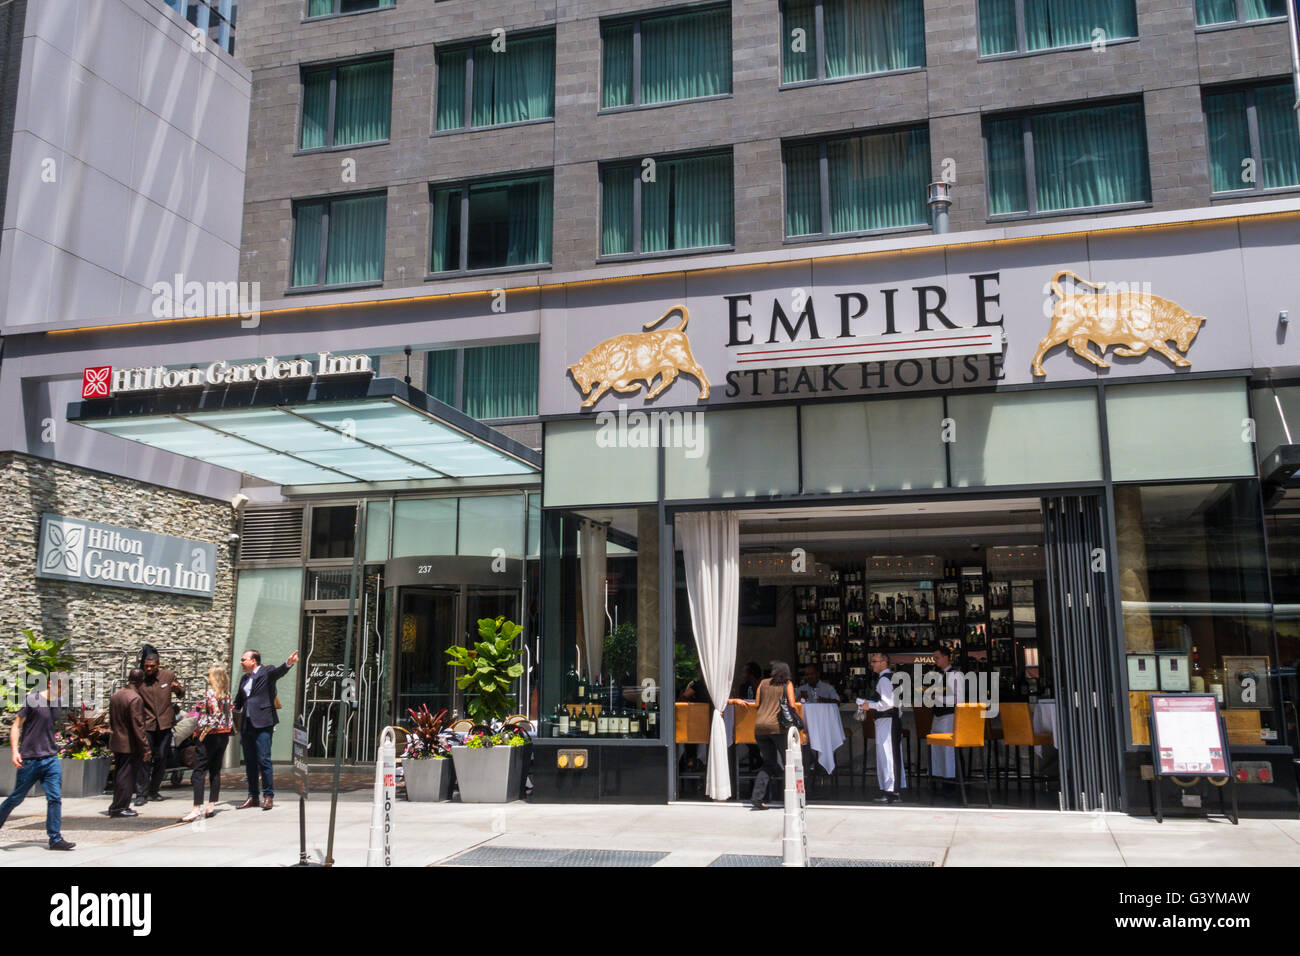 Hilton Garden Inn And Empire Restaurant On West 54th Street Nyc Stock Photo Royalty Free Image